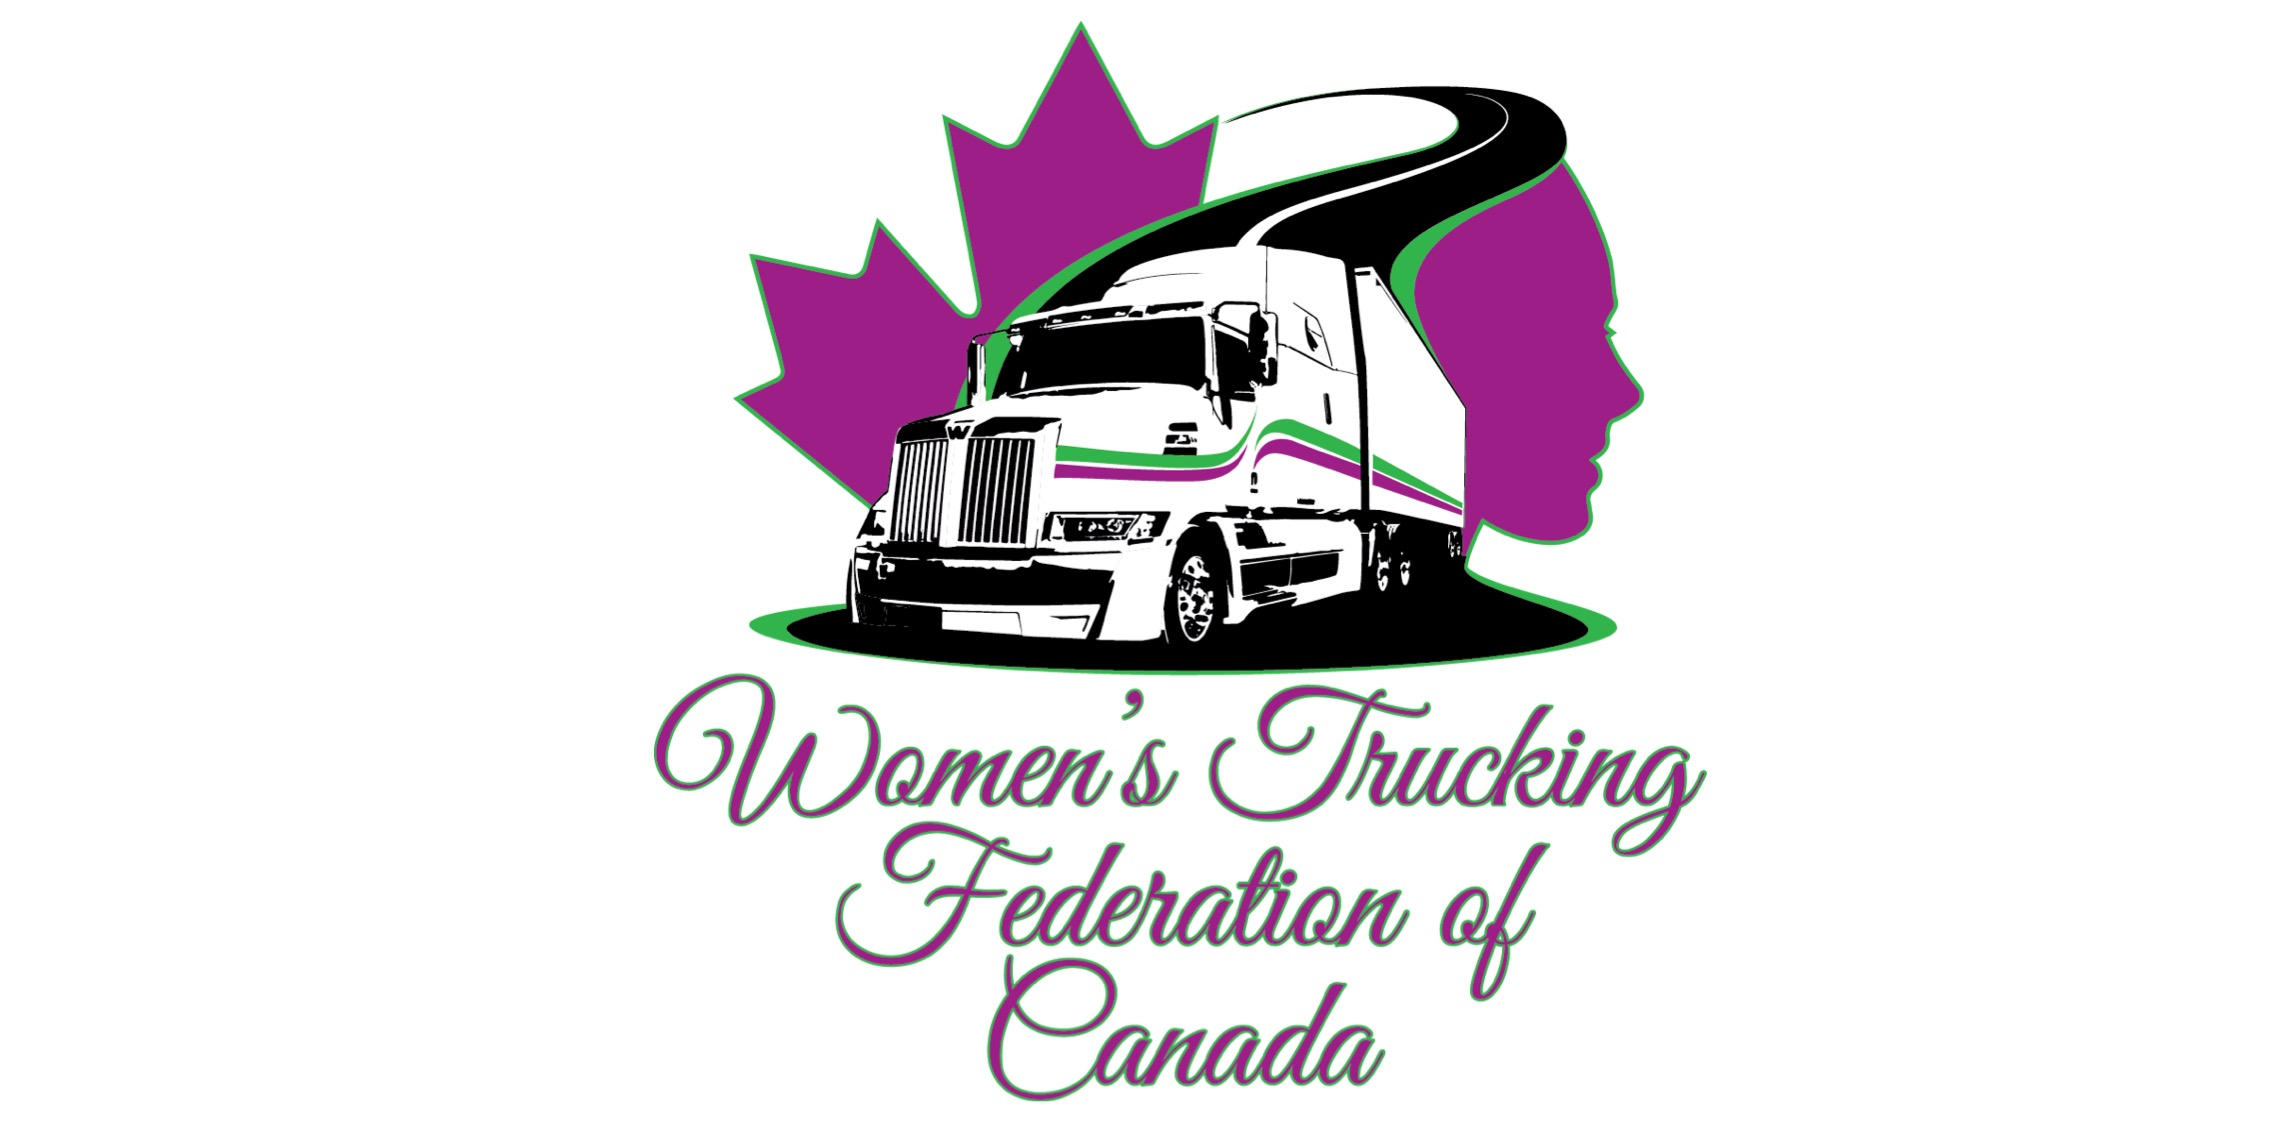 Womens Trucking Federation of Canada